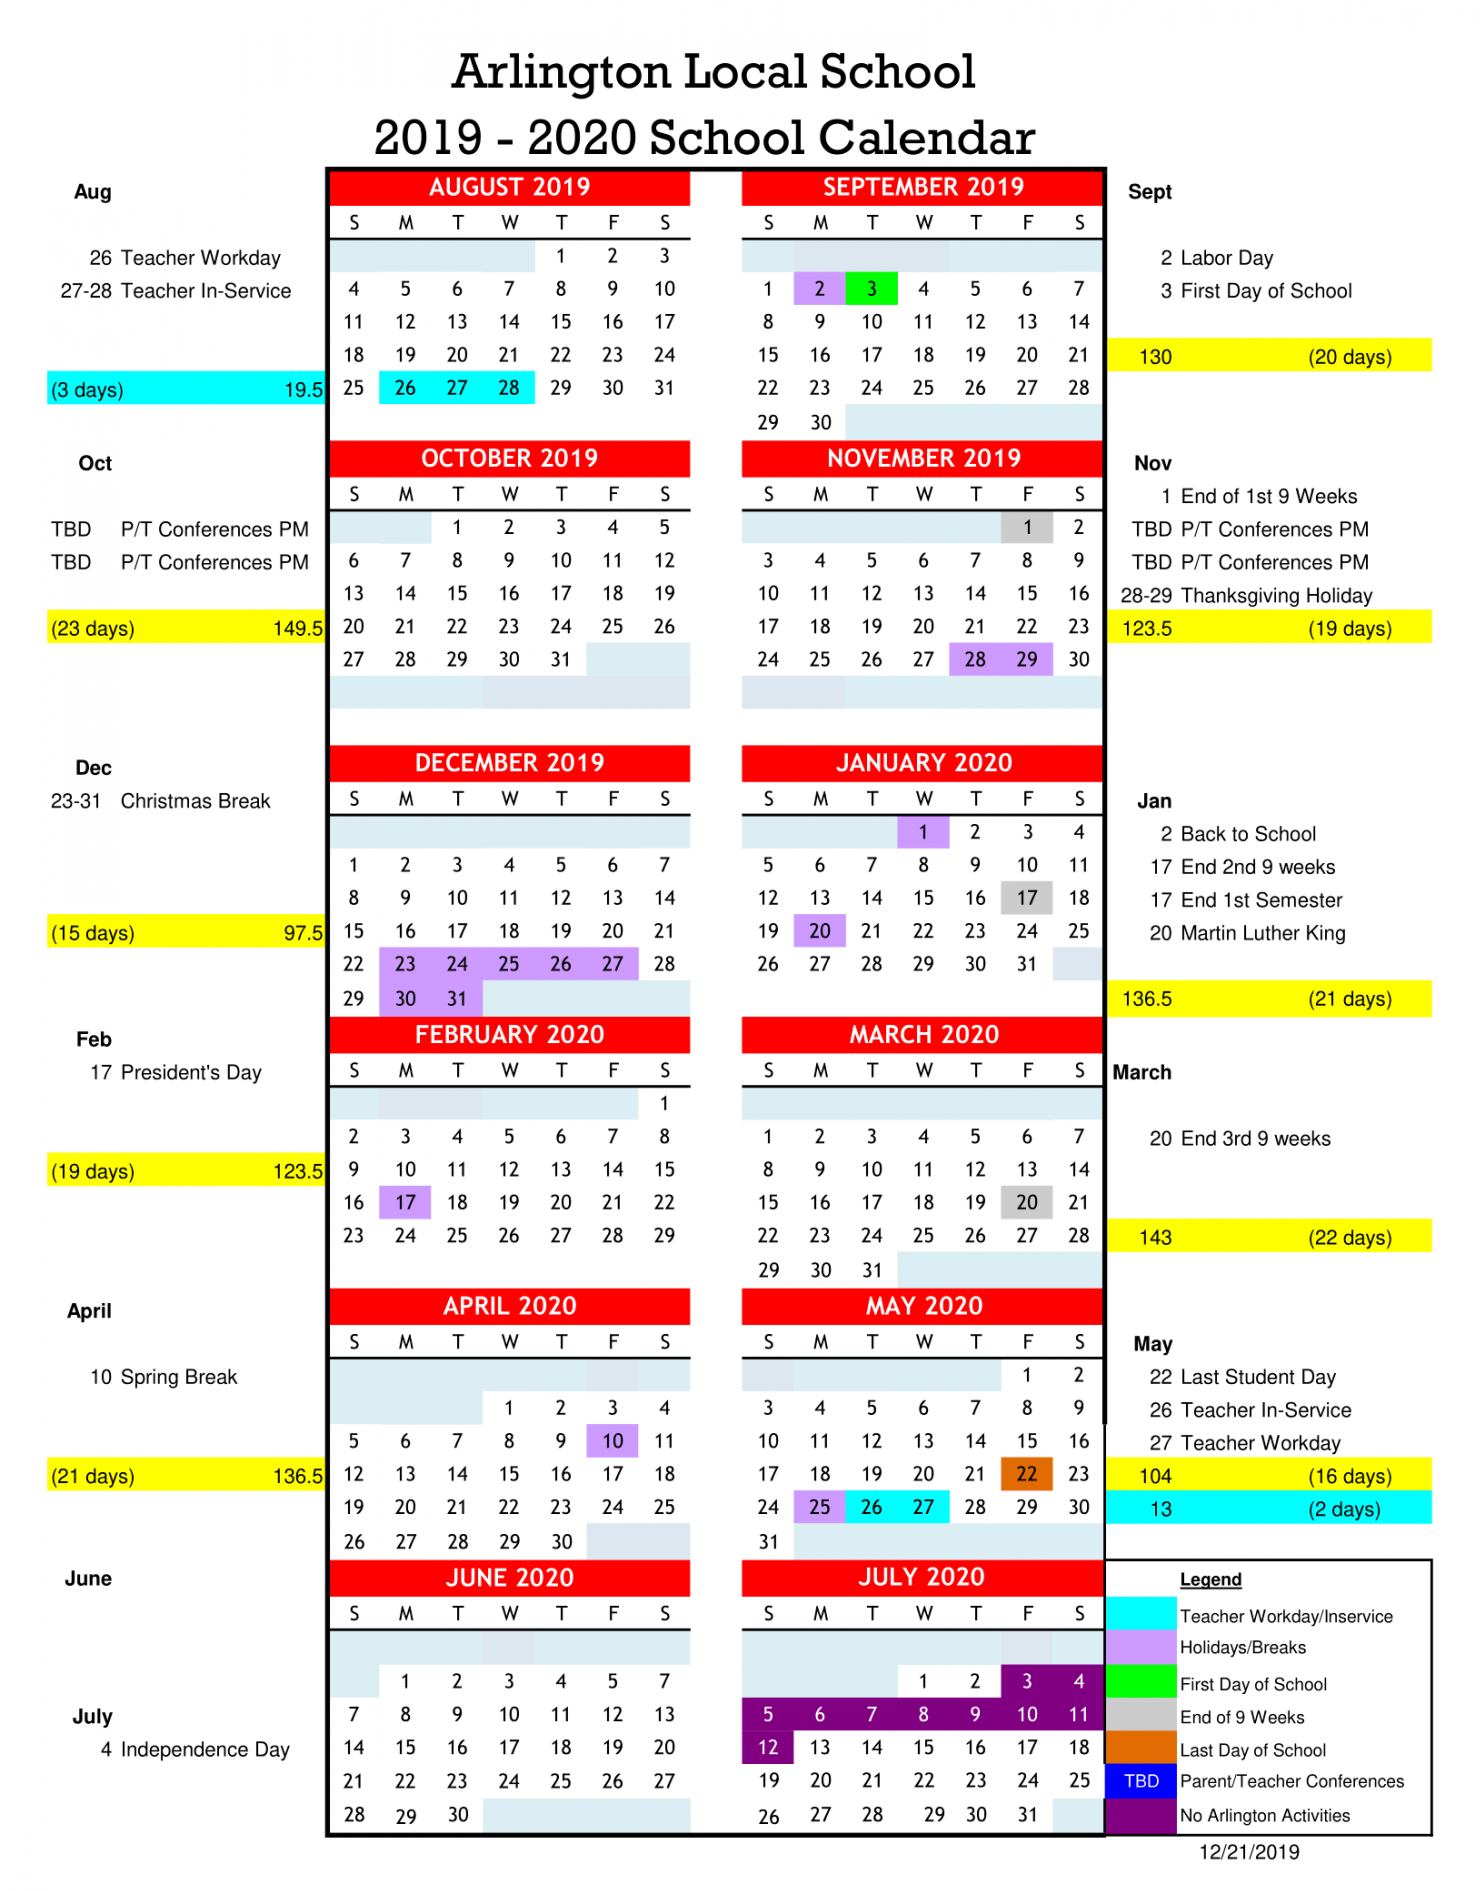 School Calendars - Arlington Local Schools Regarding University Of Findlay Academic Calendar 2021